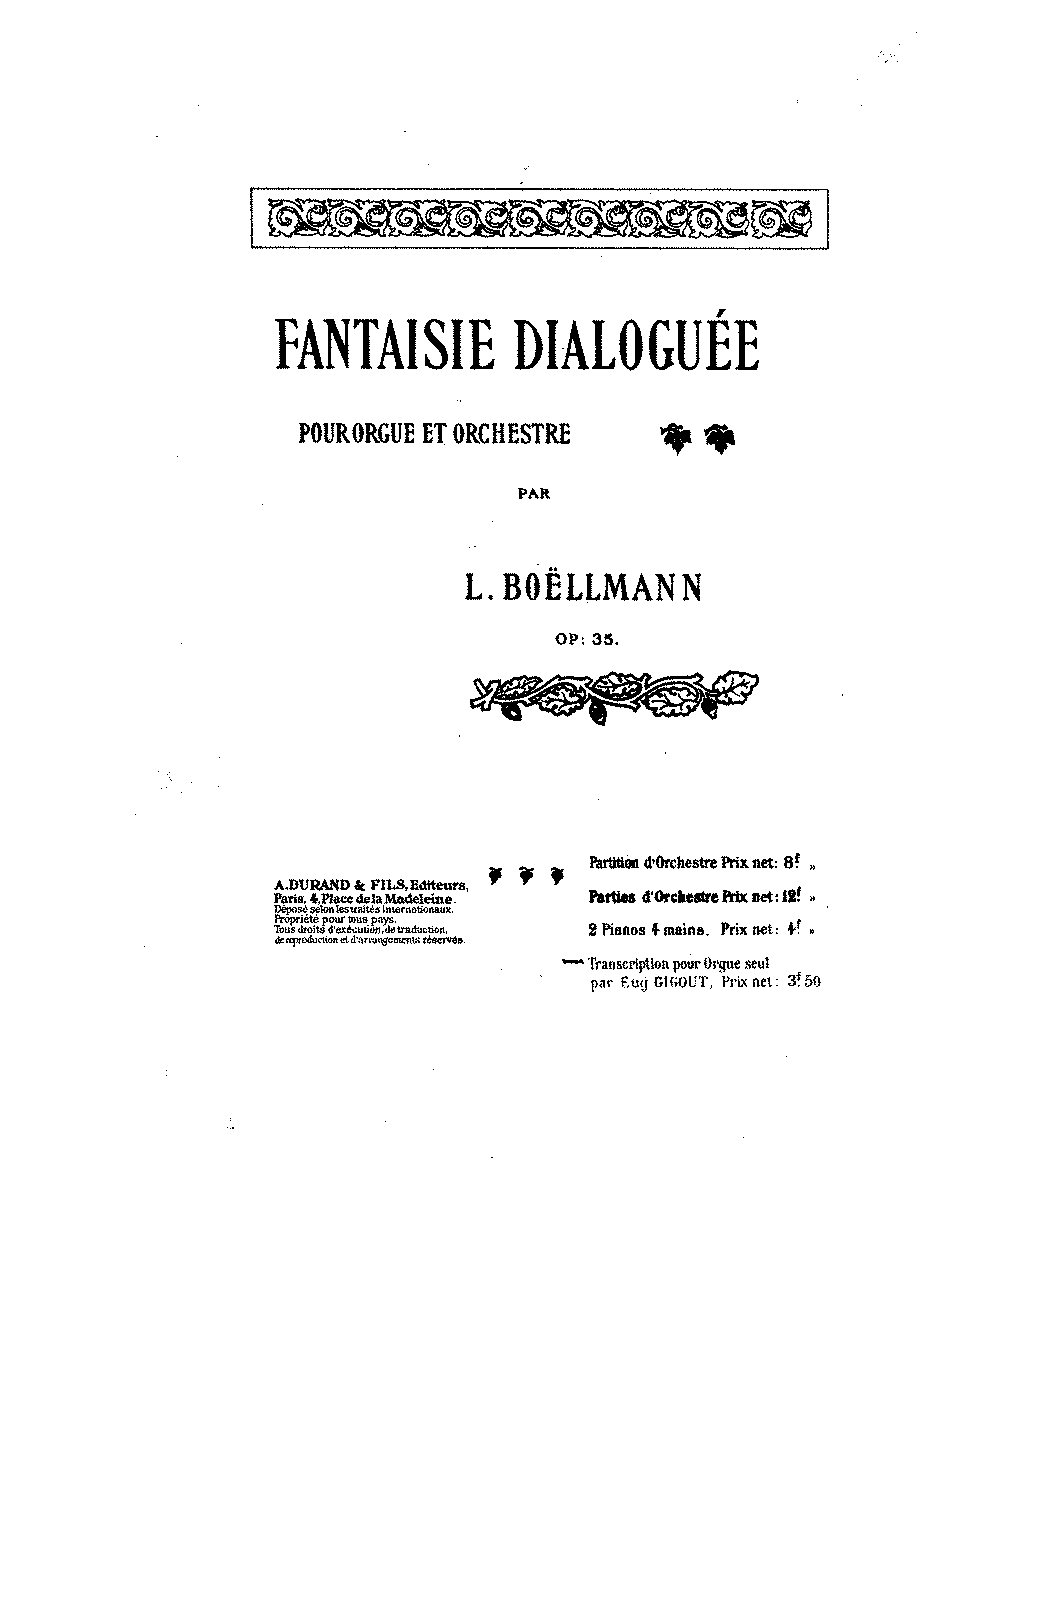 SIBLEY1802.19026.9cd0-39087012461606fantasie.pdf